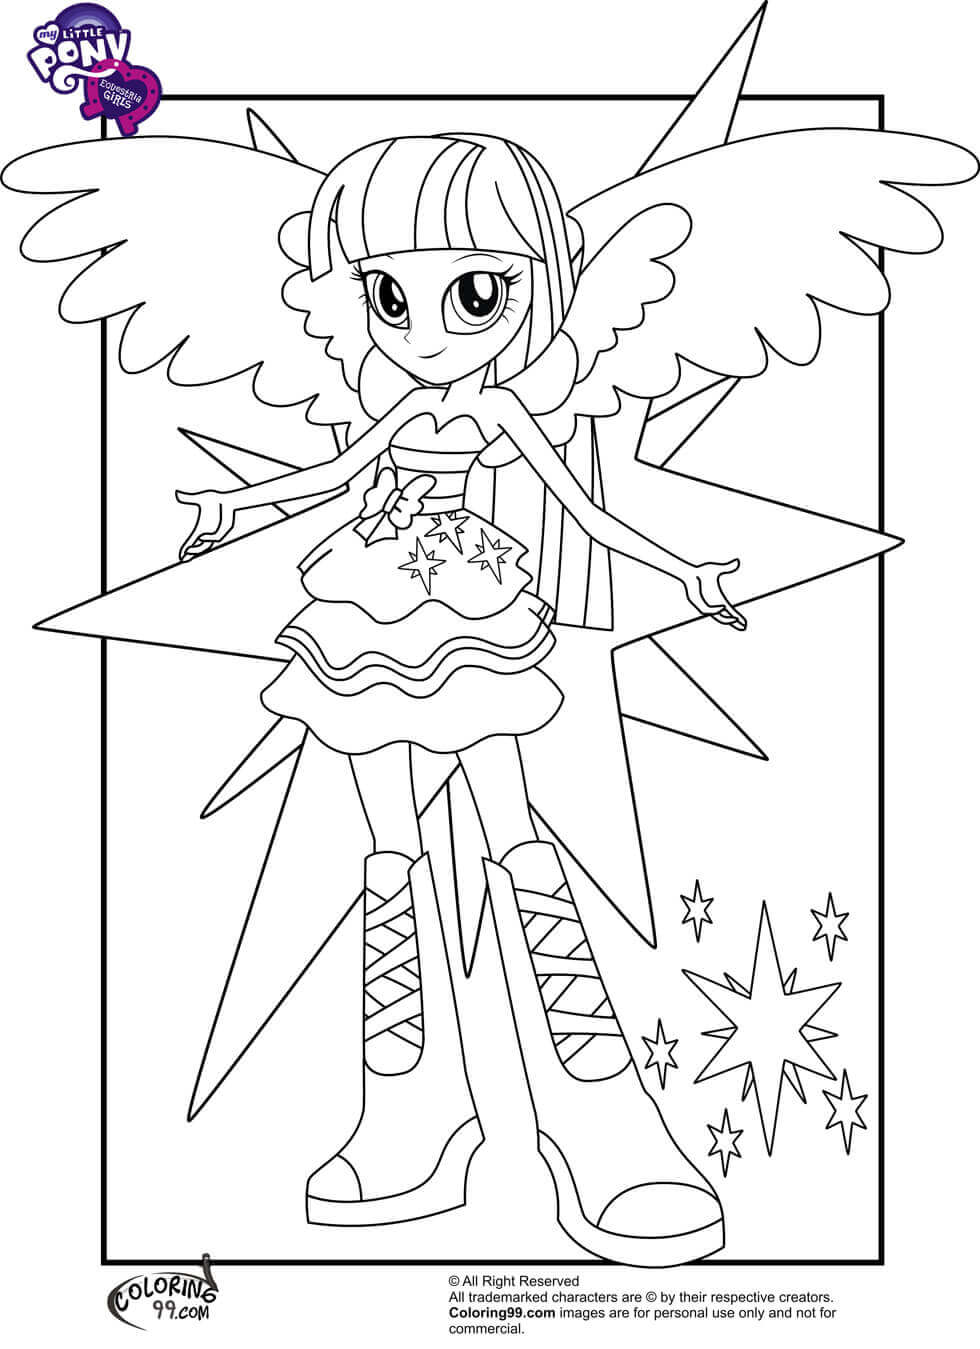 Equestria Girls Coloring Pages Amazing 15 Printable My Little Pony Equestria Girls Coloring Pages 2017